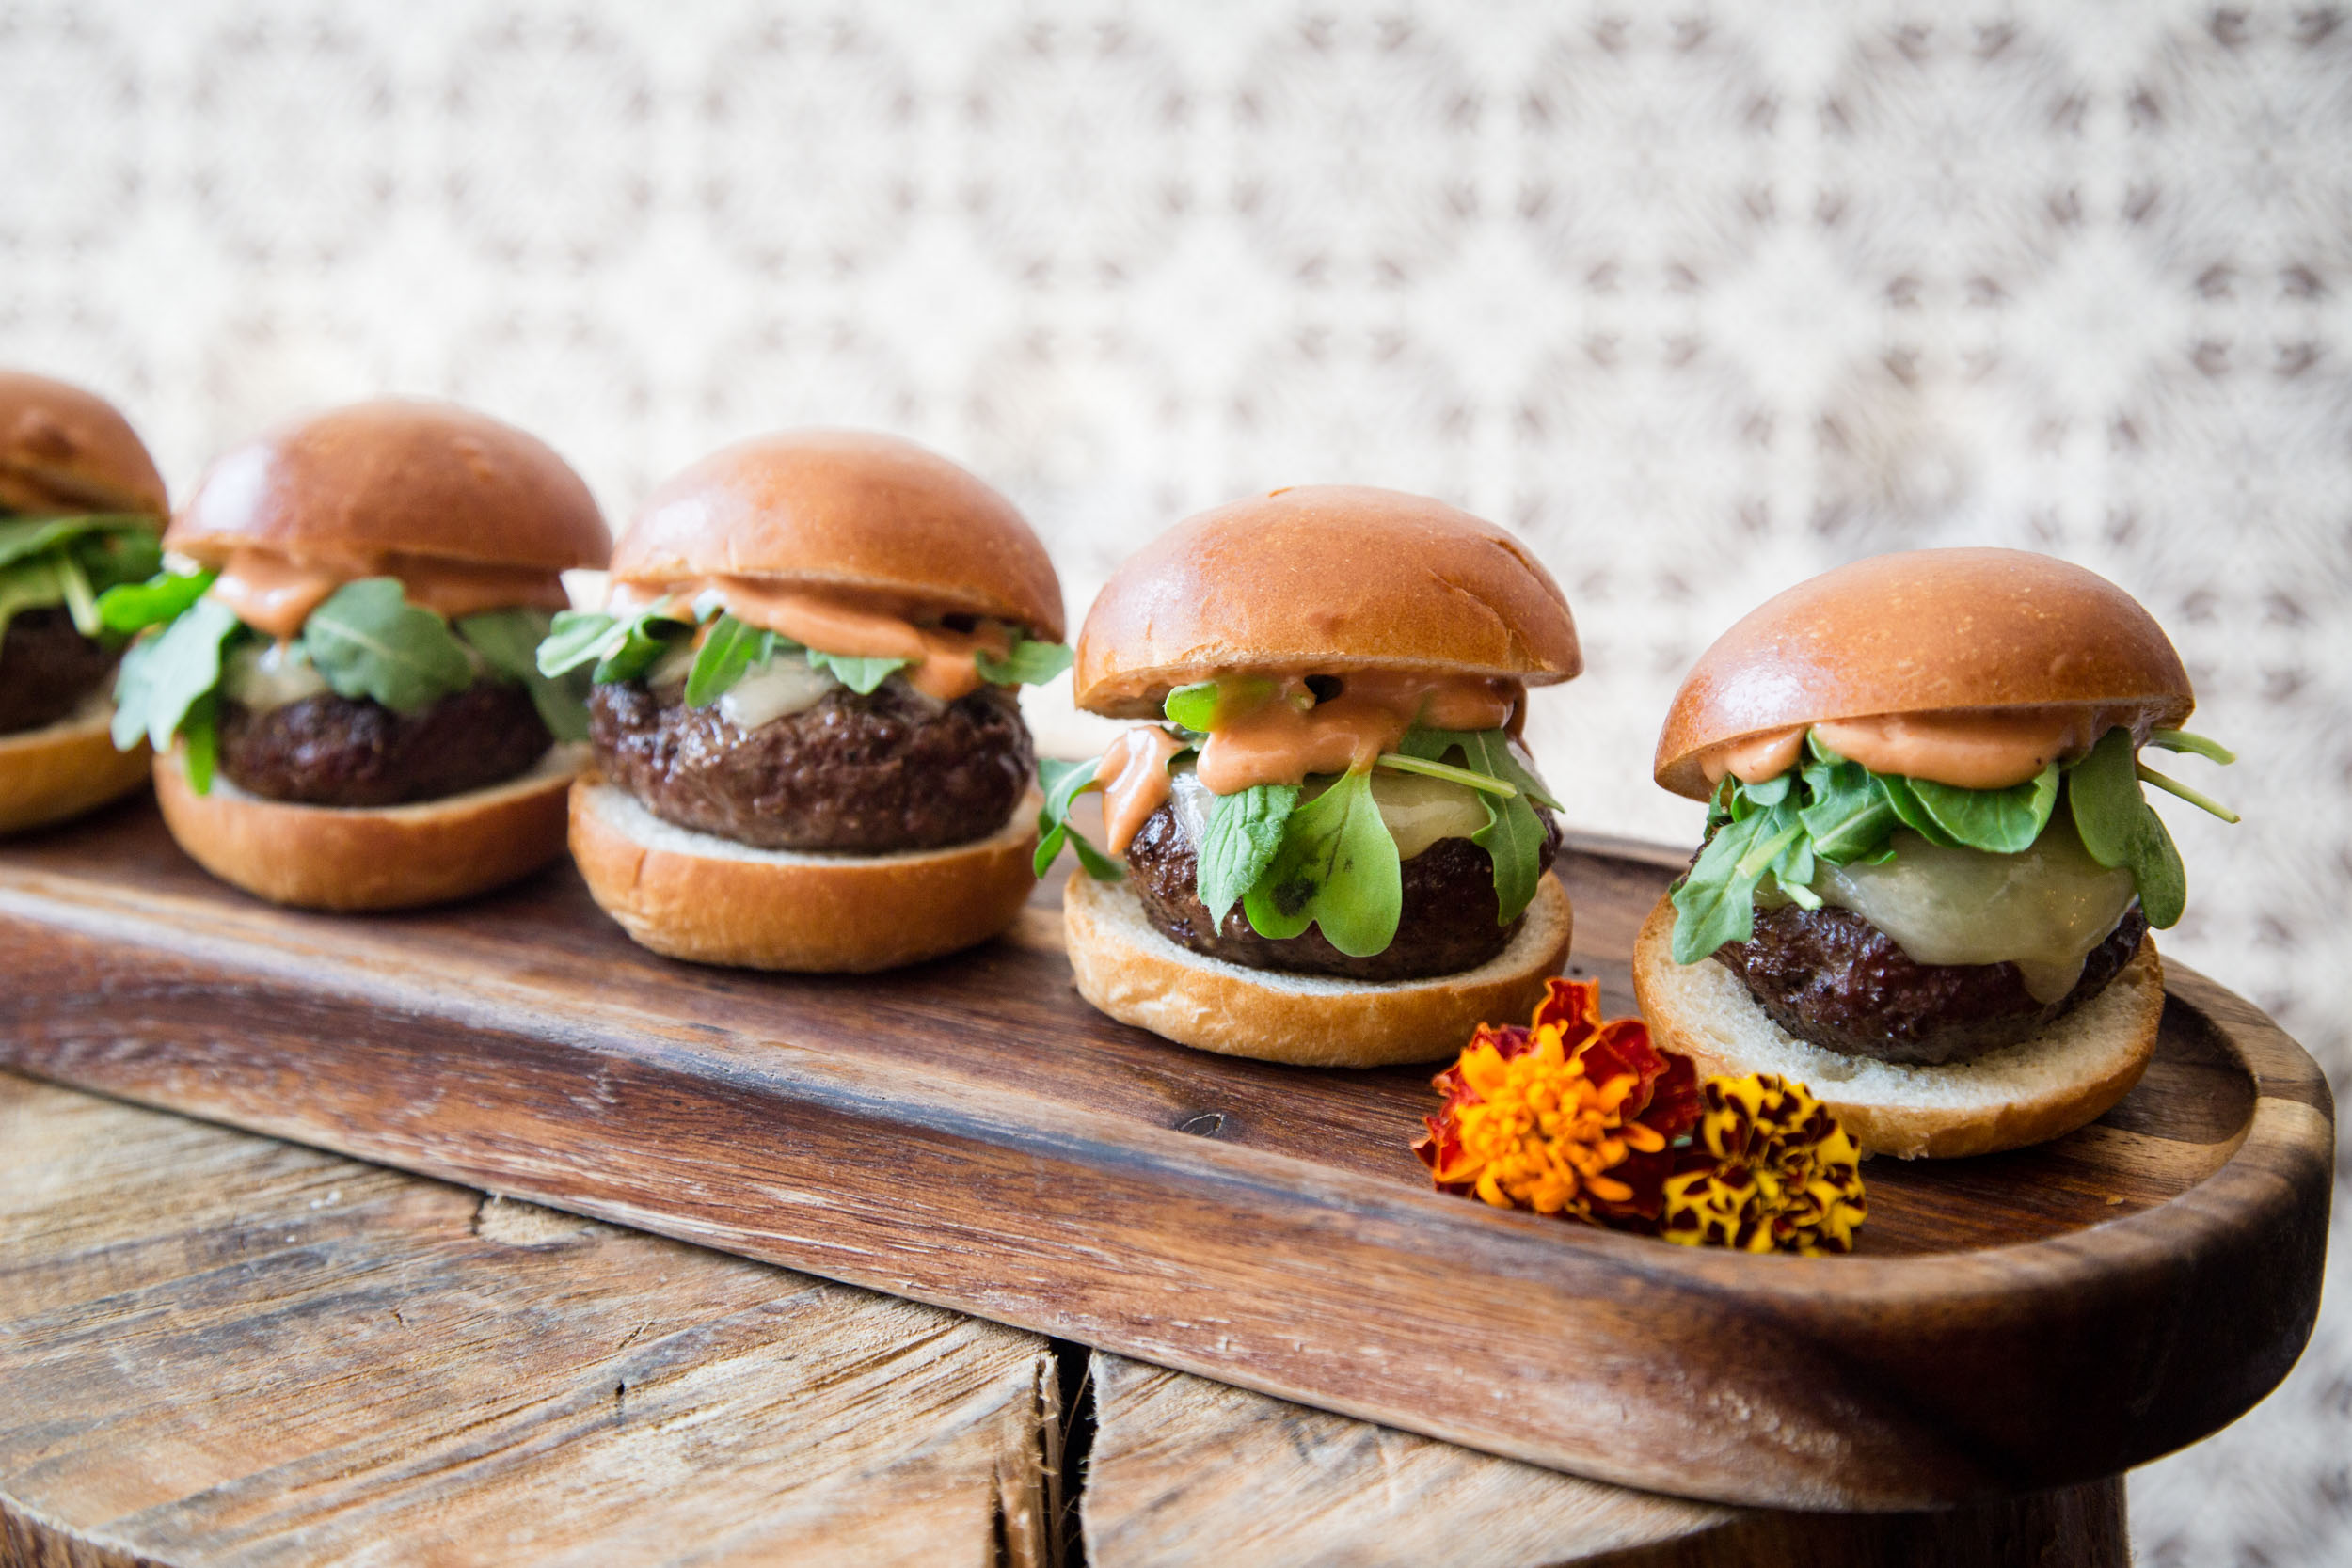 Grass-Fed Beef Slider with Cabot Cheddar, Arugula, and Special Sauce on Potato Bun